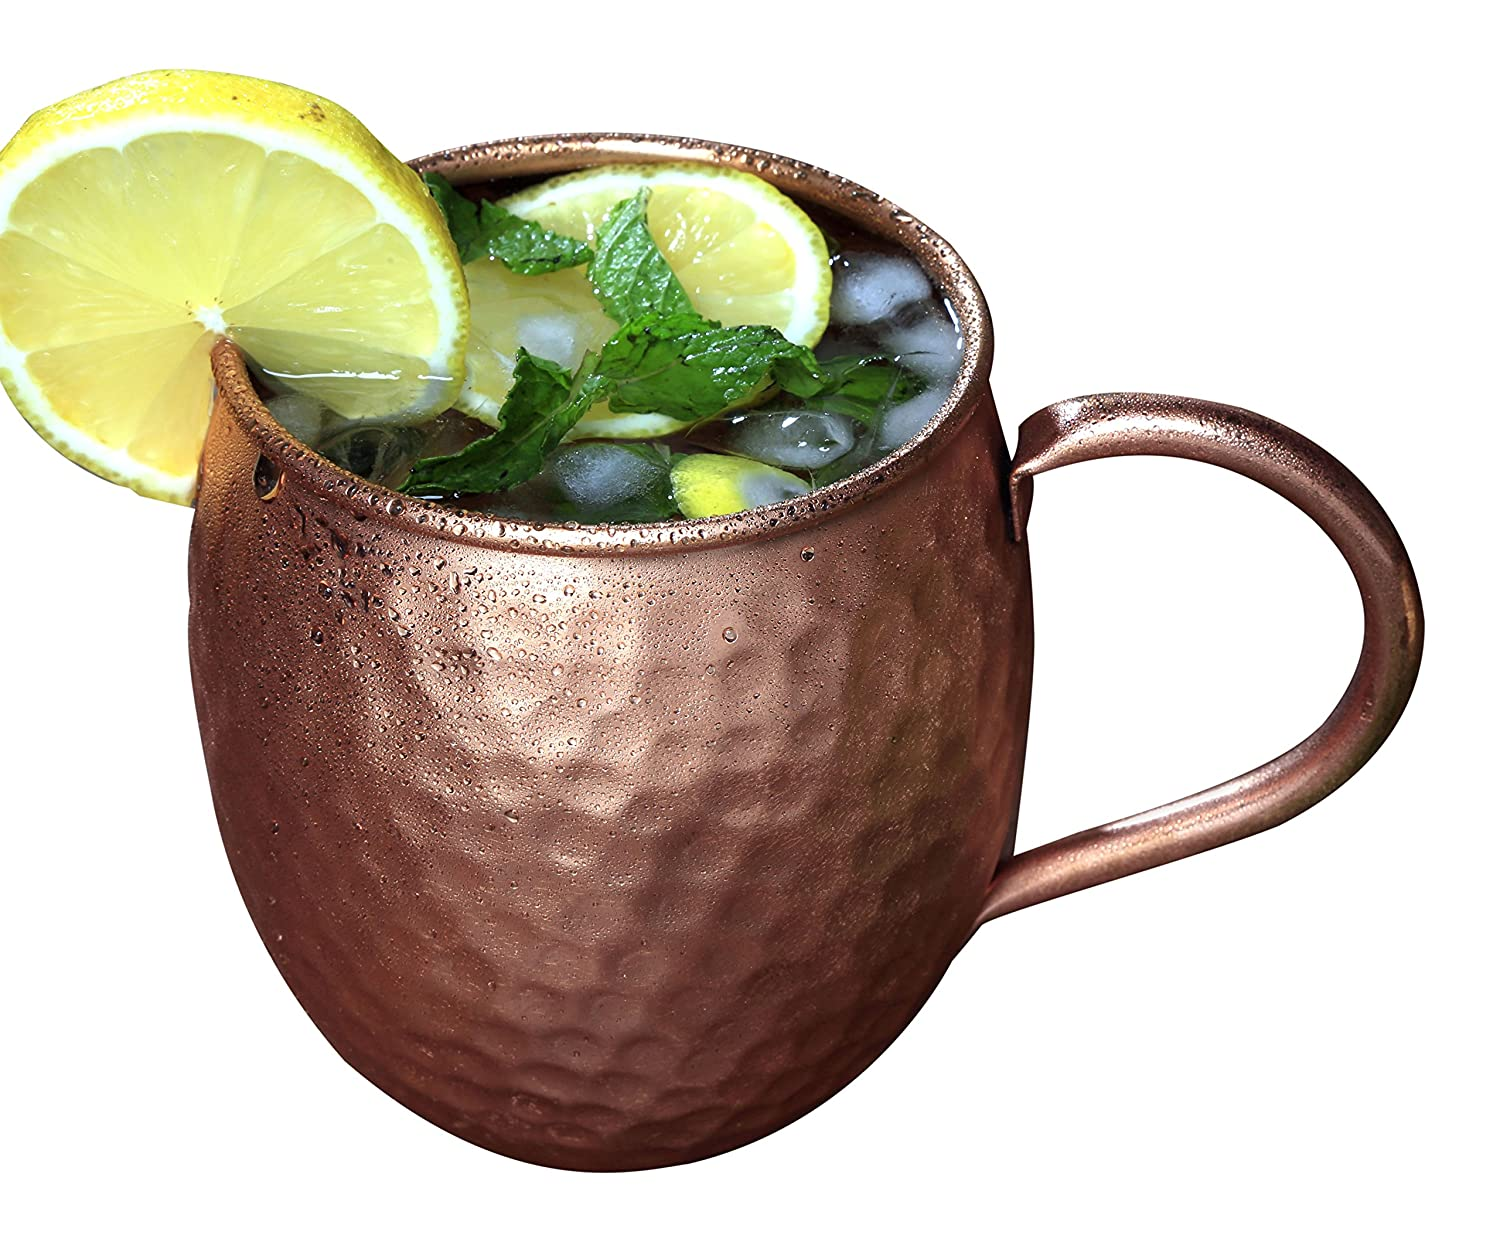 Melange Set of 2 Copper Barrel Mug for Moscow Mules - 24 oz - 100% Pure Hammered Copper - Heavy Gauge - No lining - Includes FREE Recipe book 710228915108